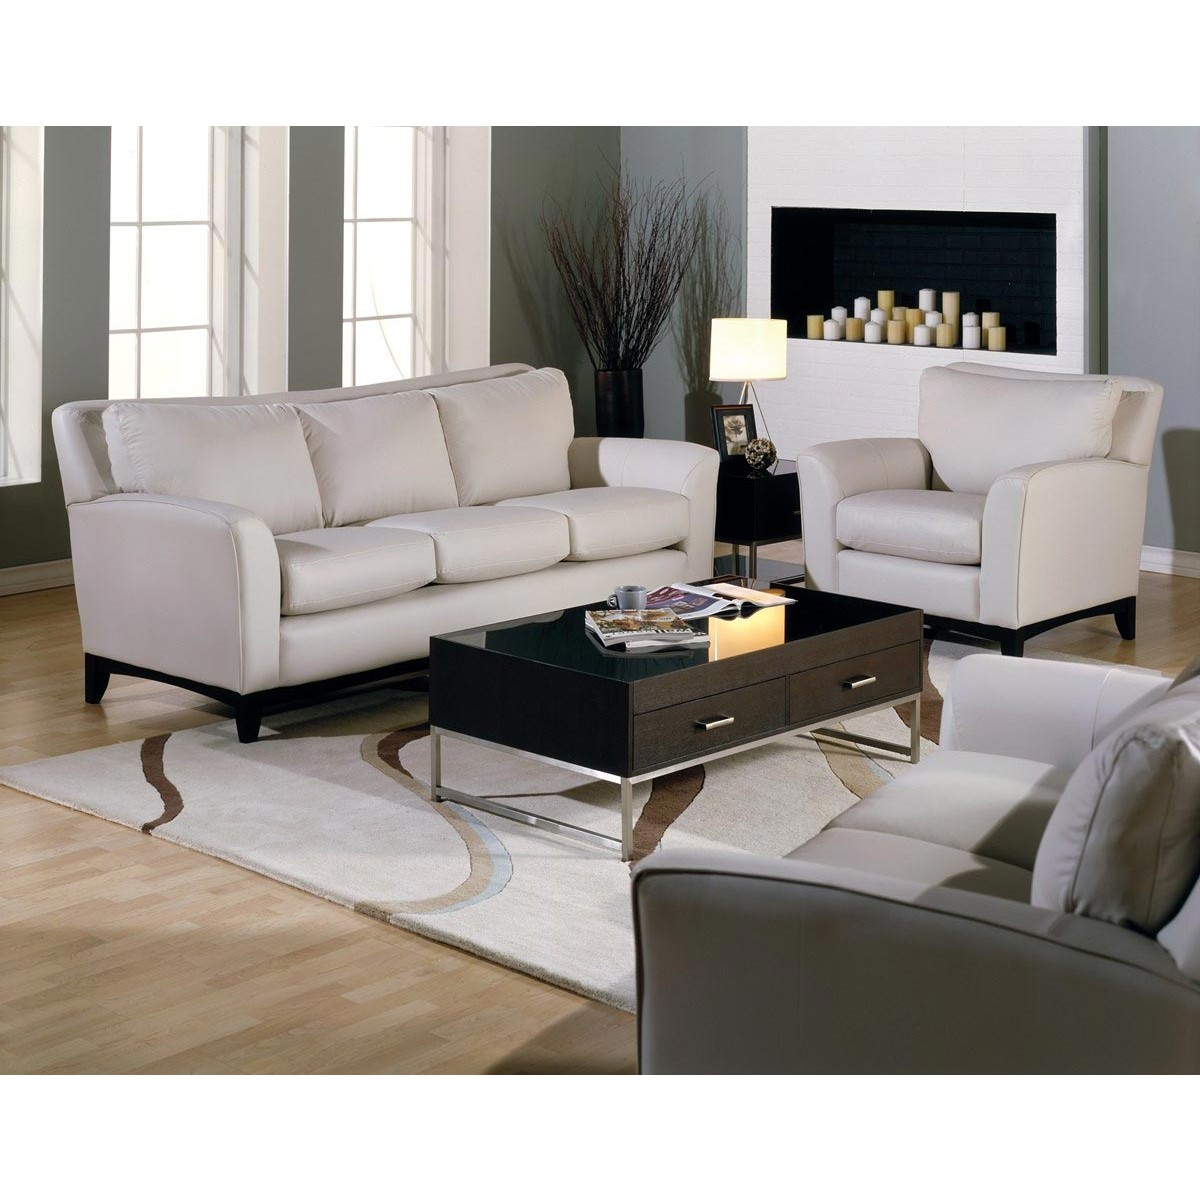 Stressless Sofa India Palliser India From 1 159 00 By Palliser Danco Modern